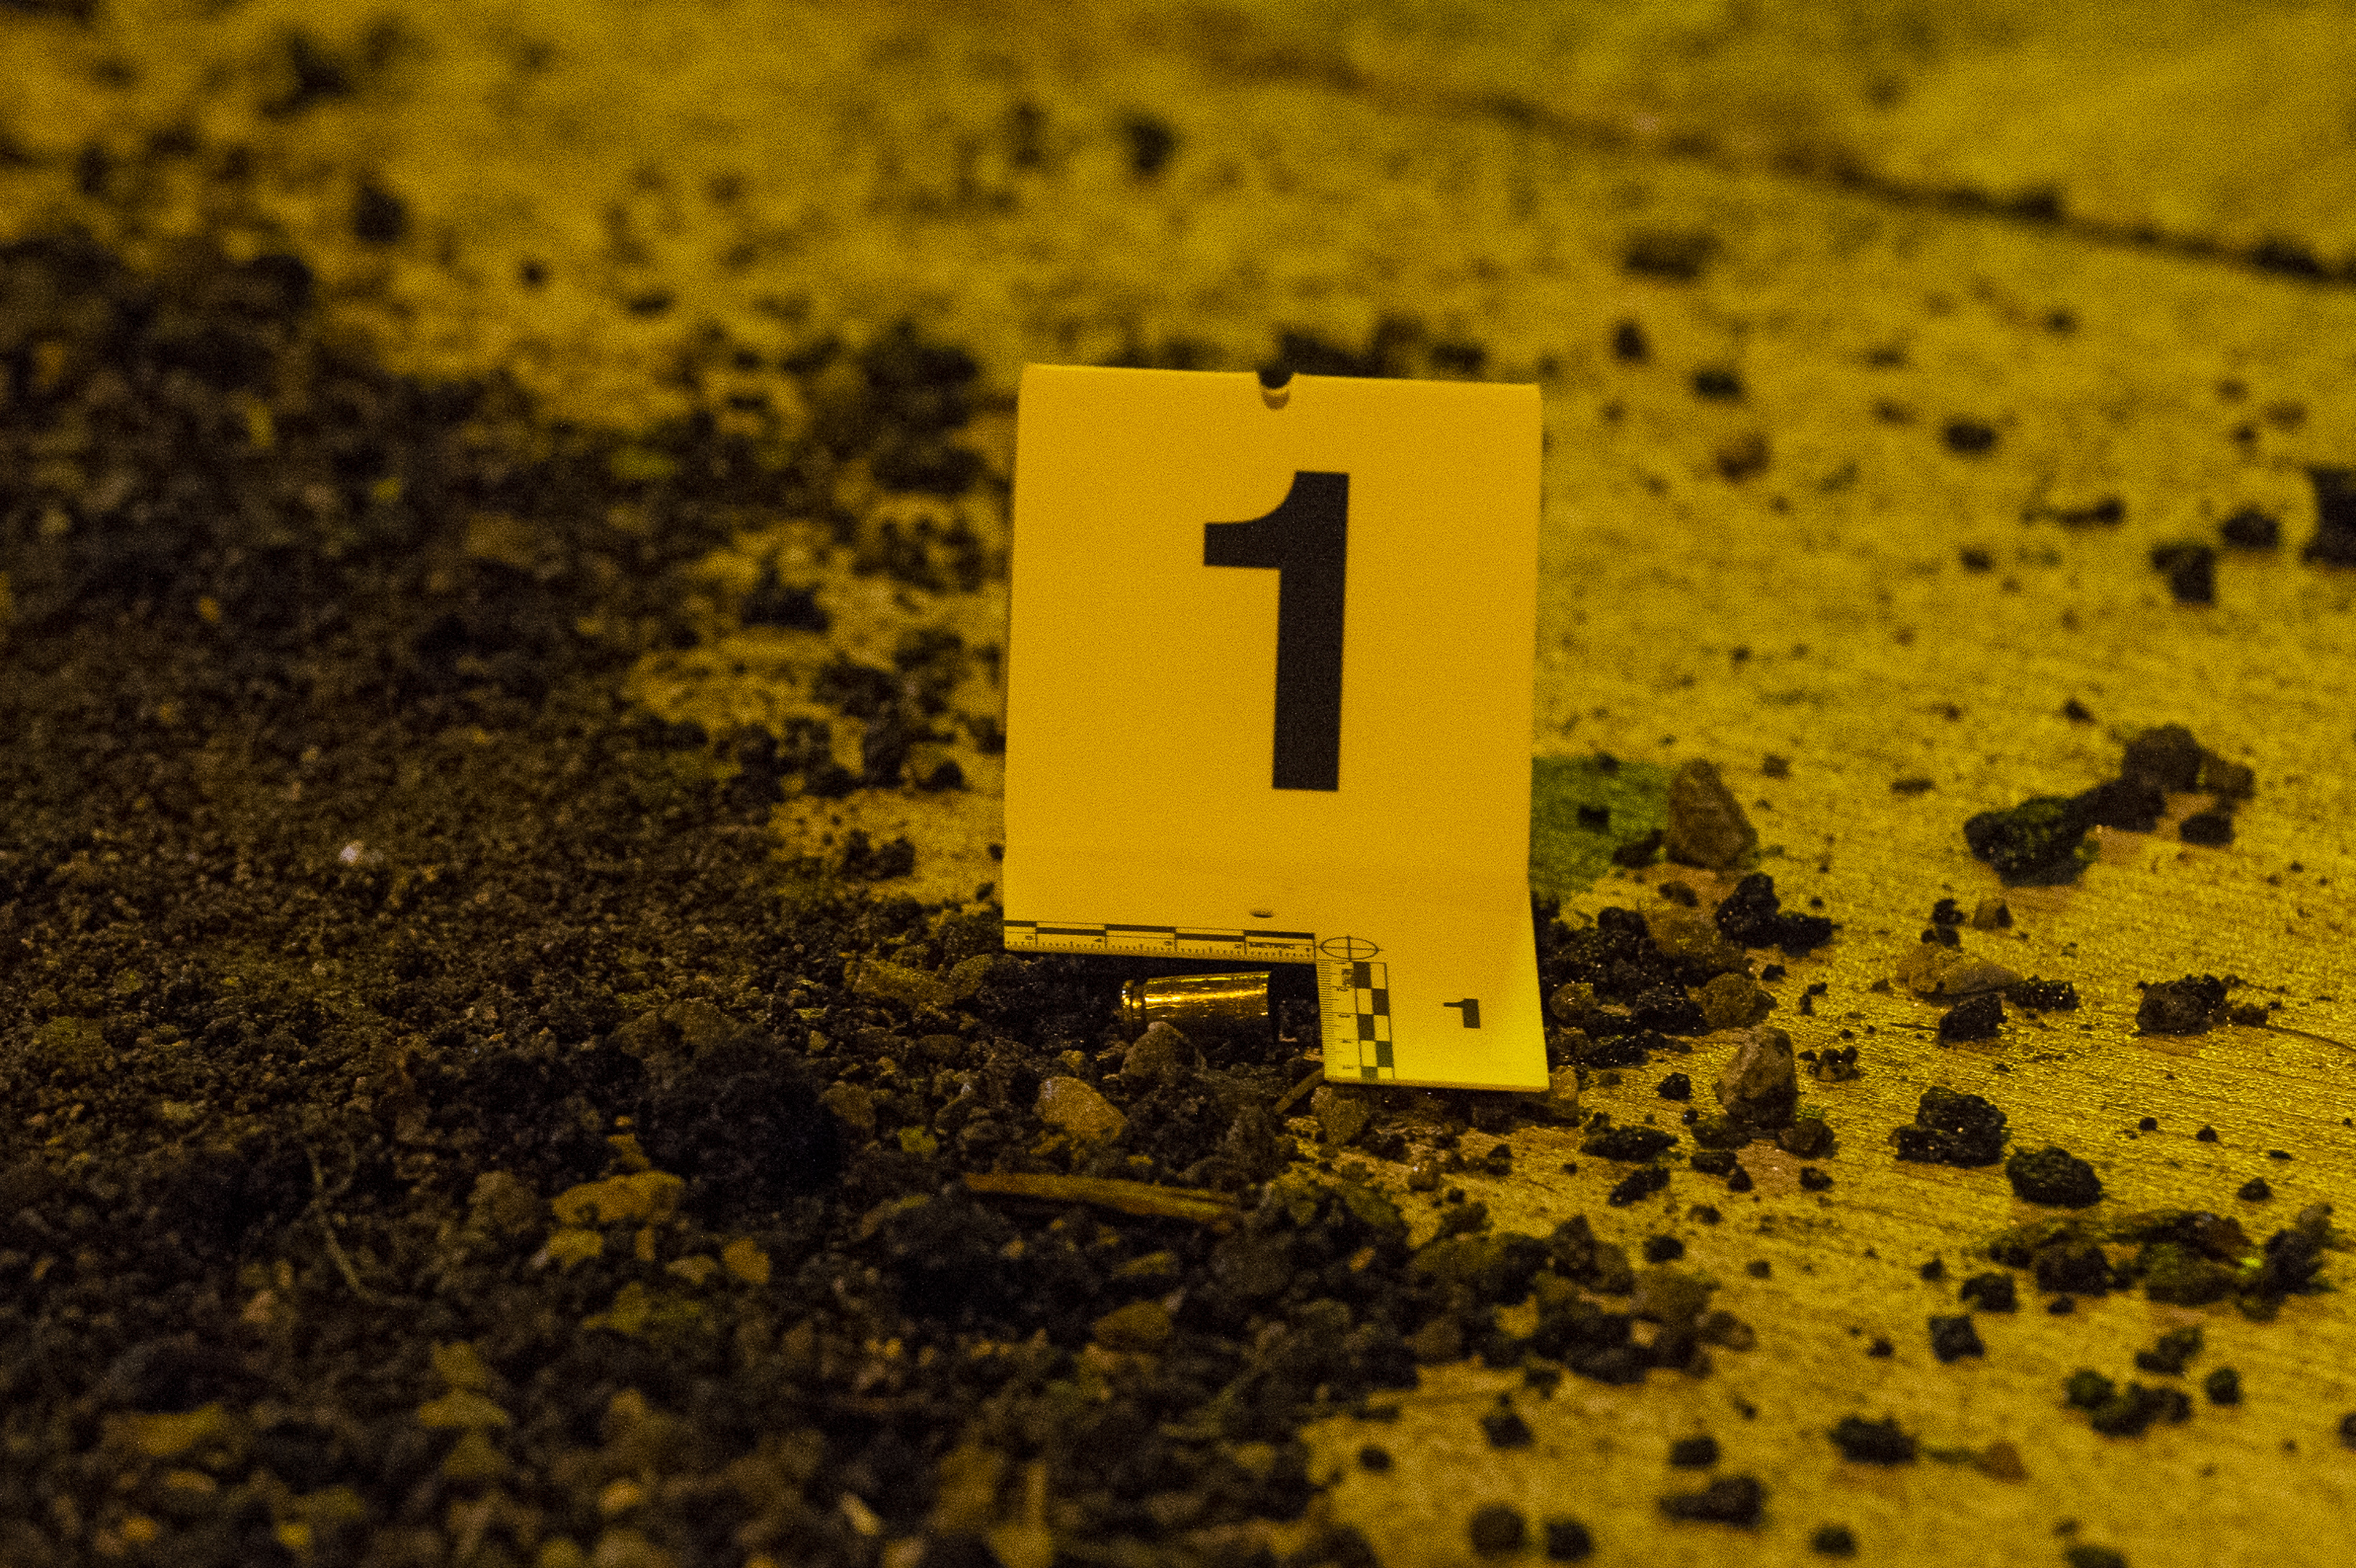 A person was fatally shot August 16, 2021 in Rogers Park.